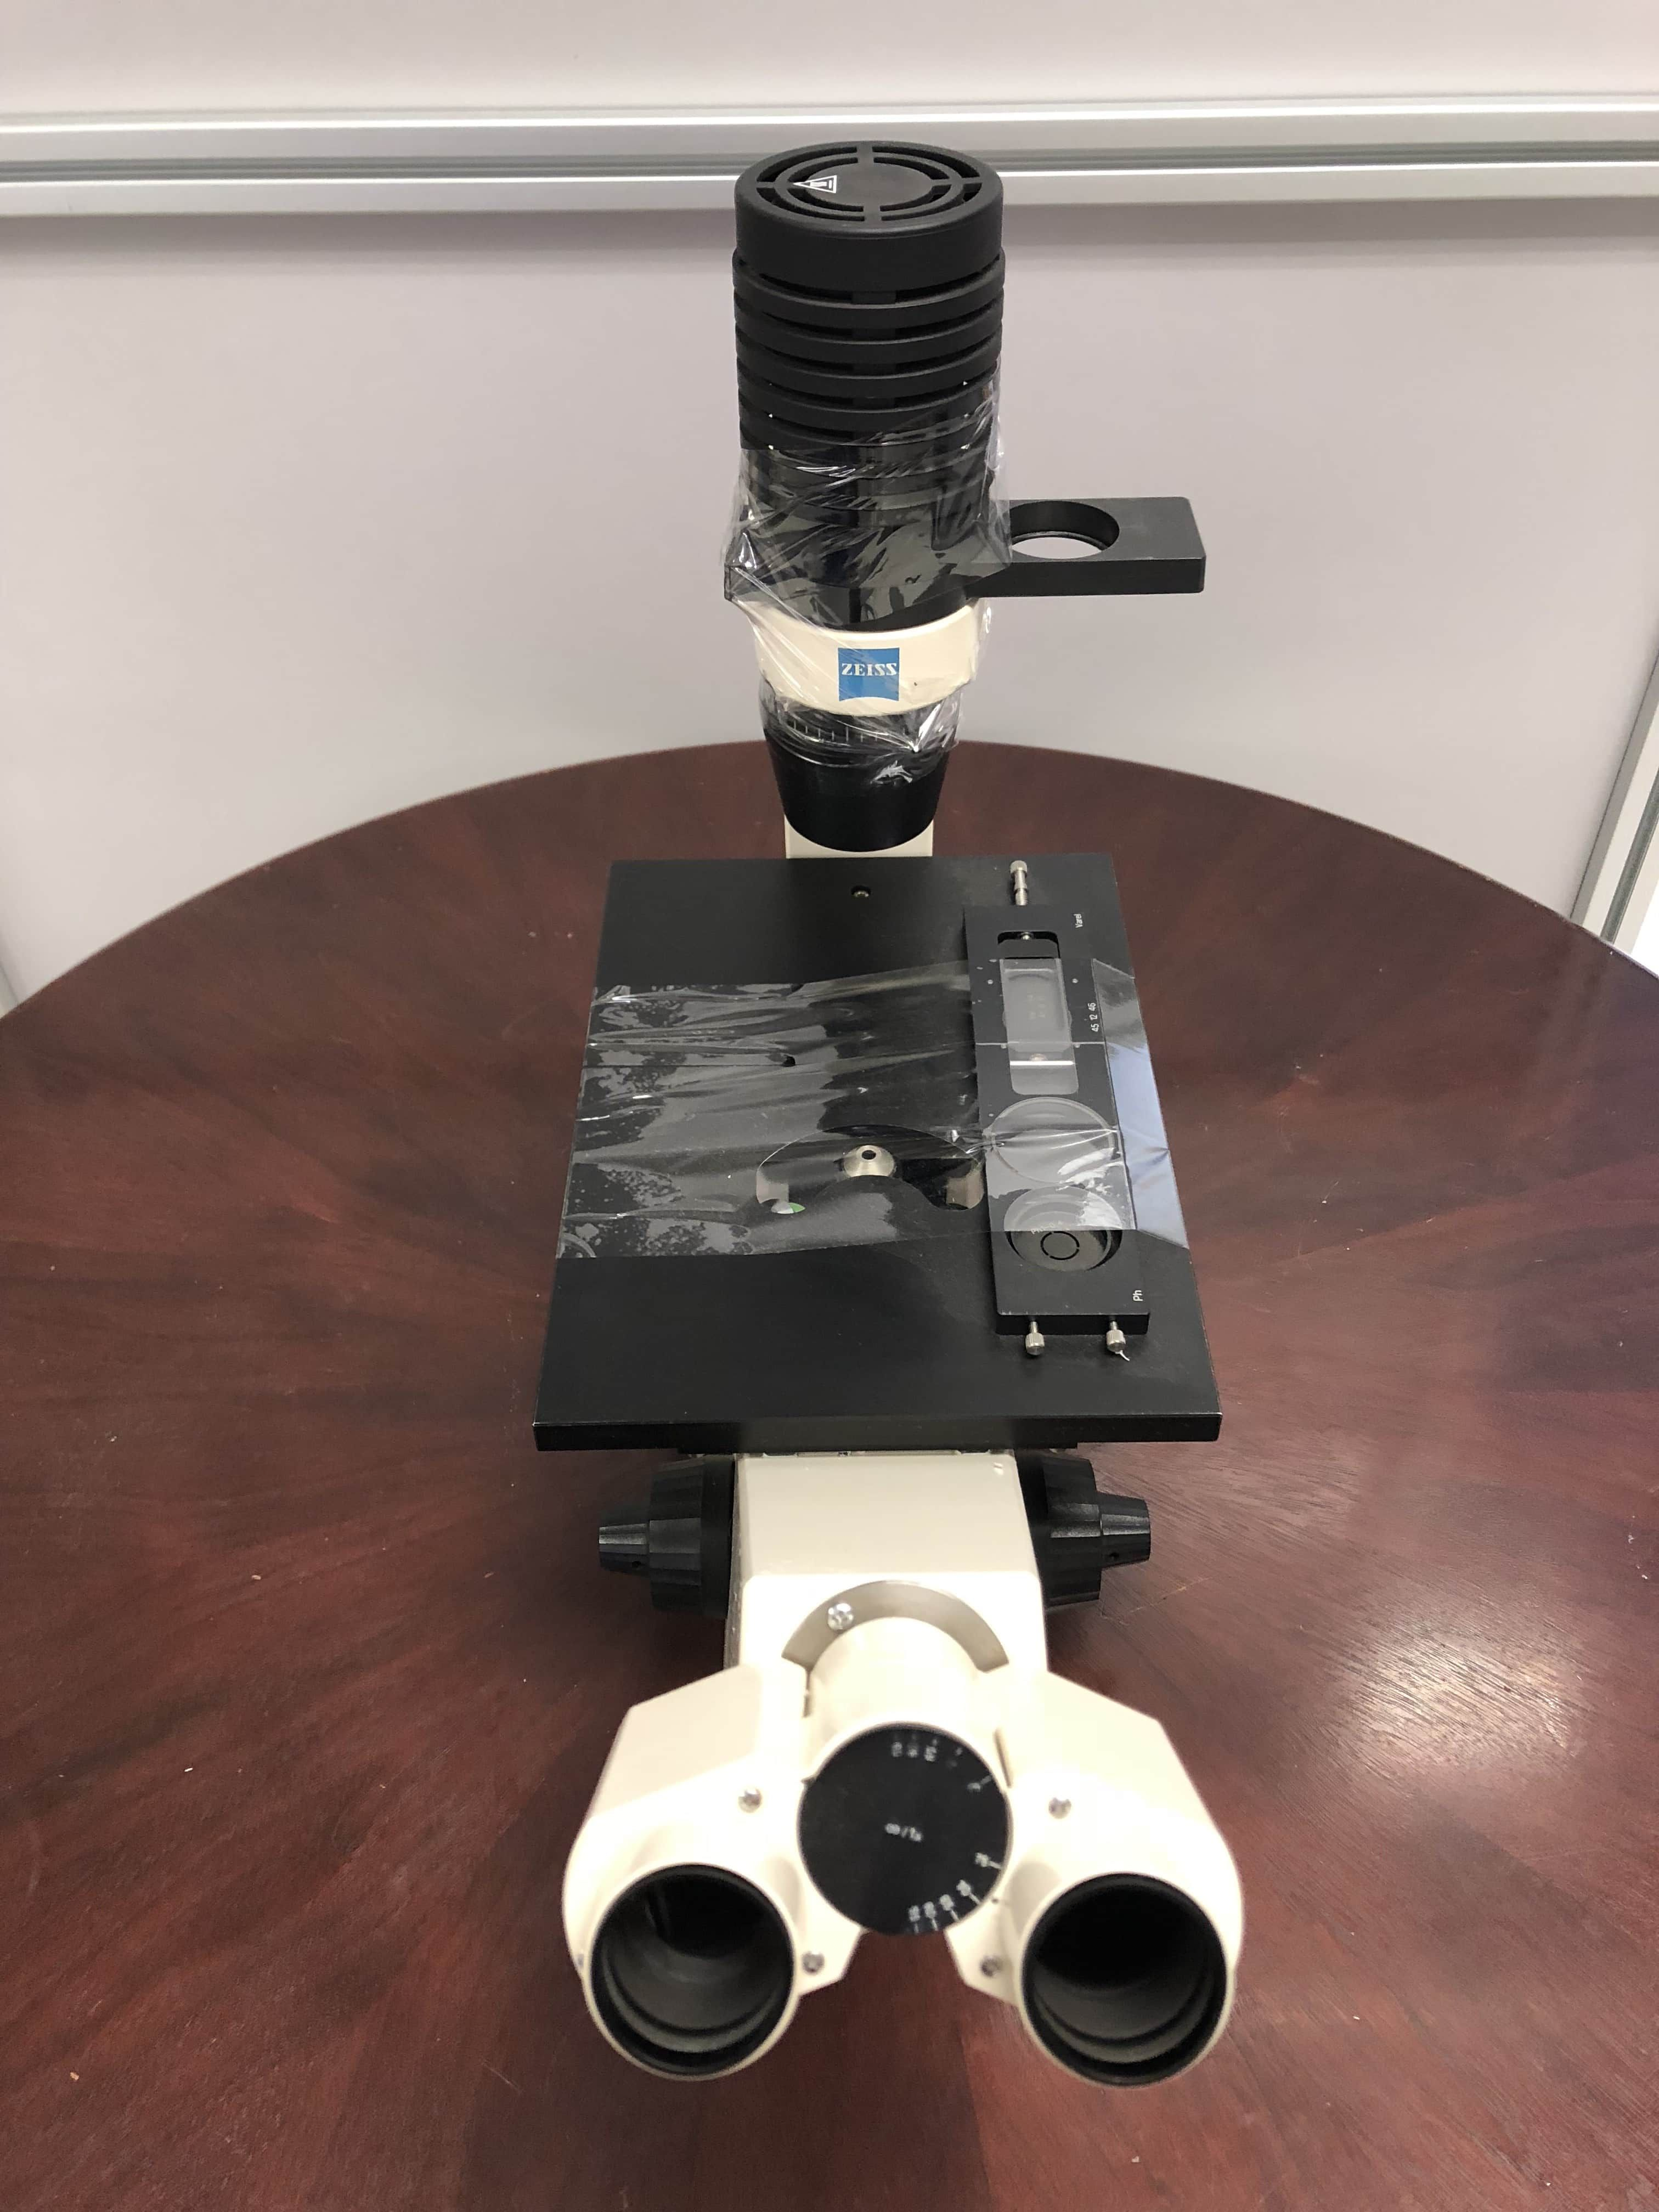 ZEISS Axiovert 25 Inverted Microscope